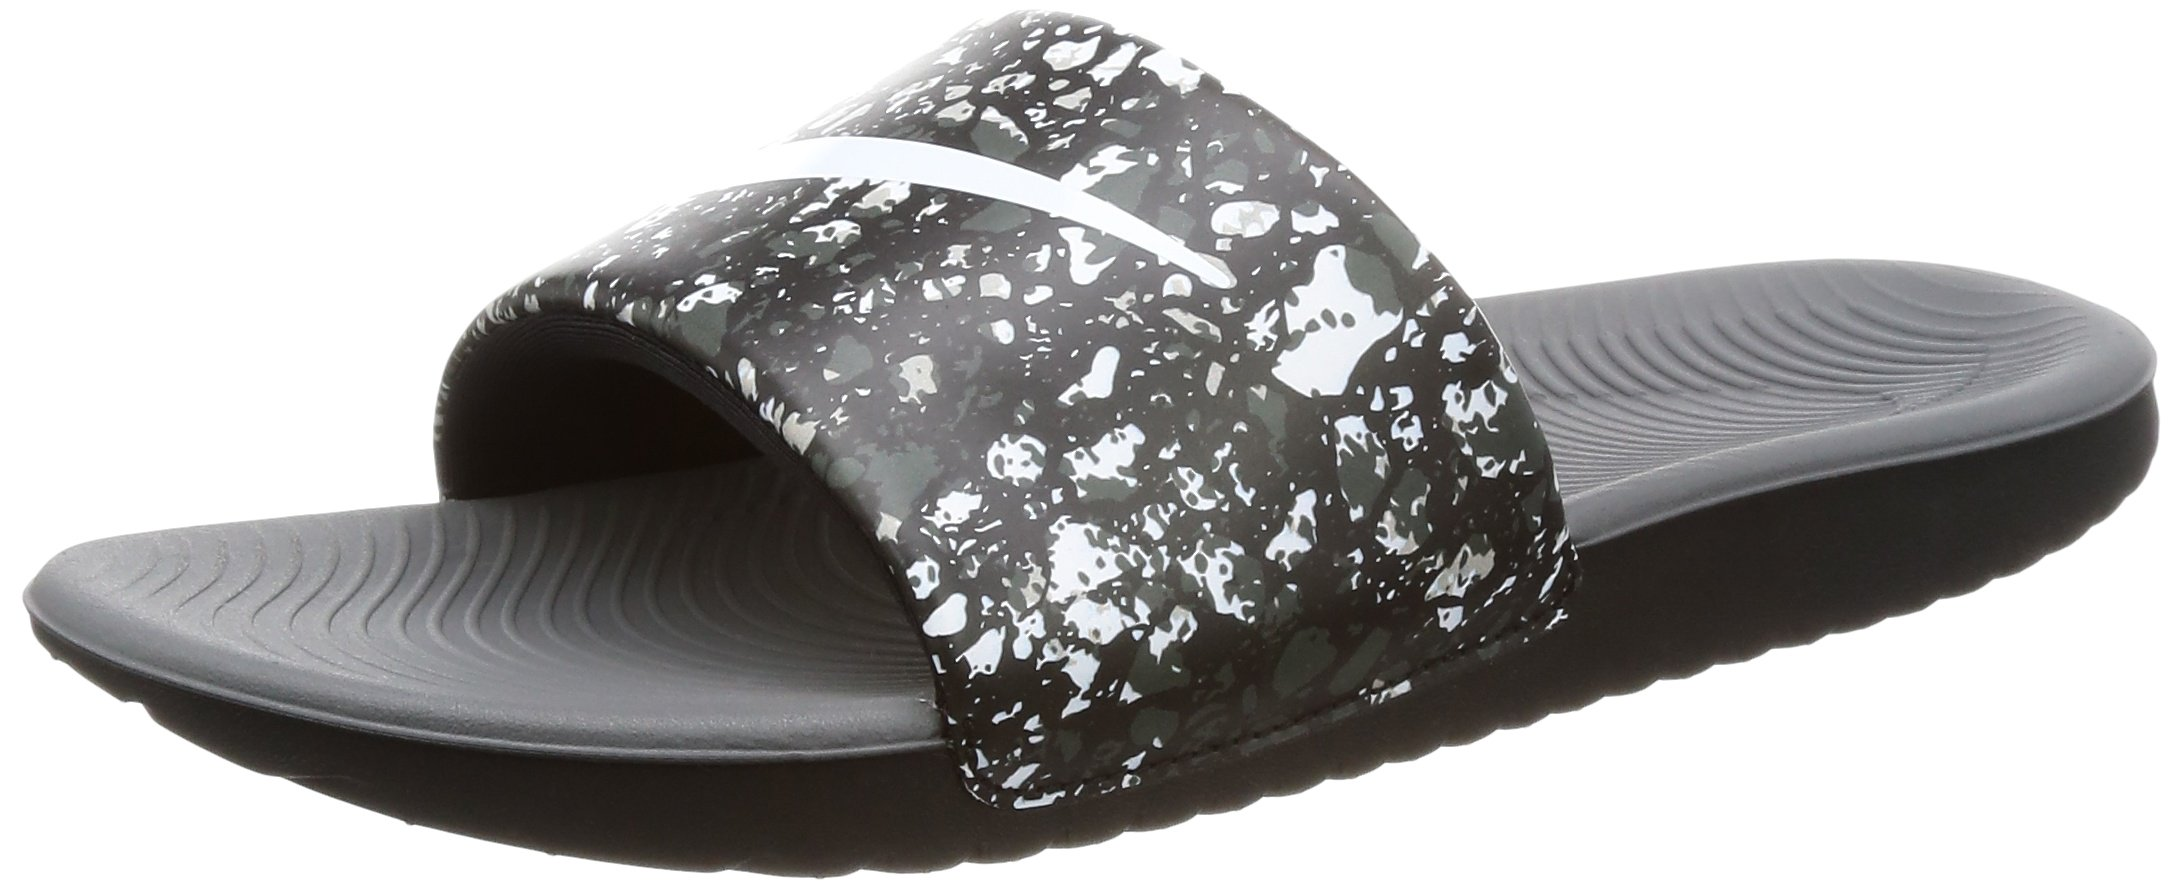 Nike Boy's Kawa Slide Printed Sandal Black/White/Dark Grey Size 3 M US